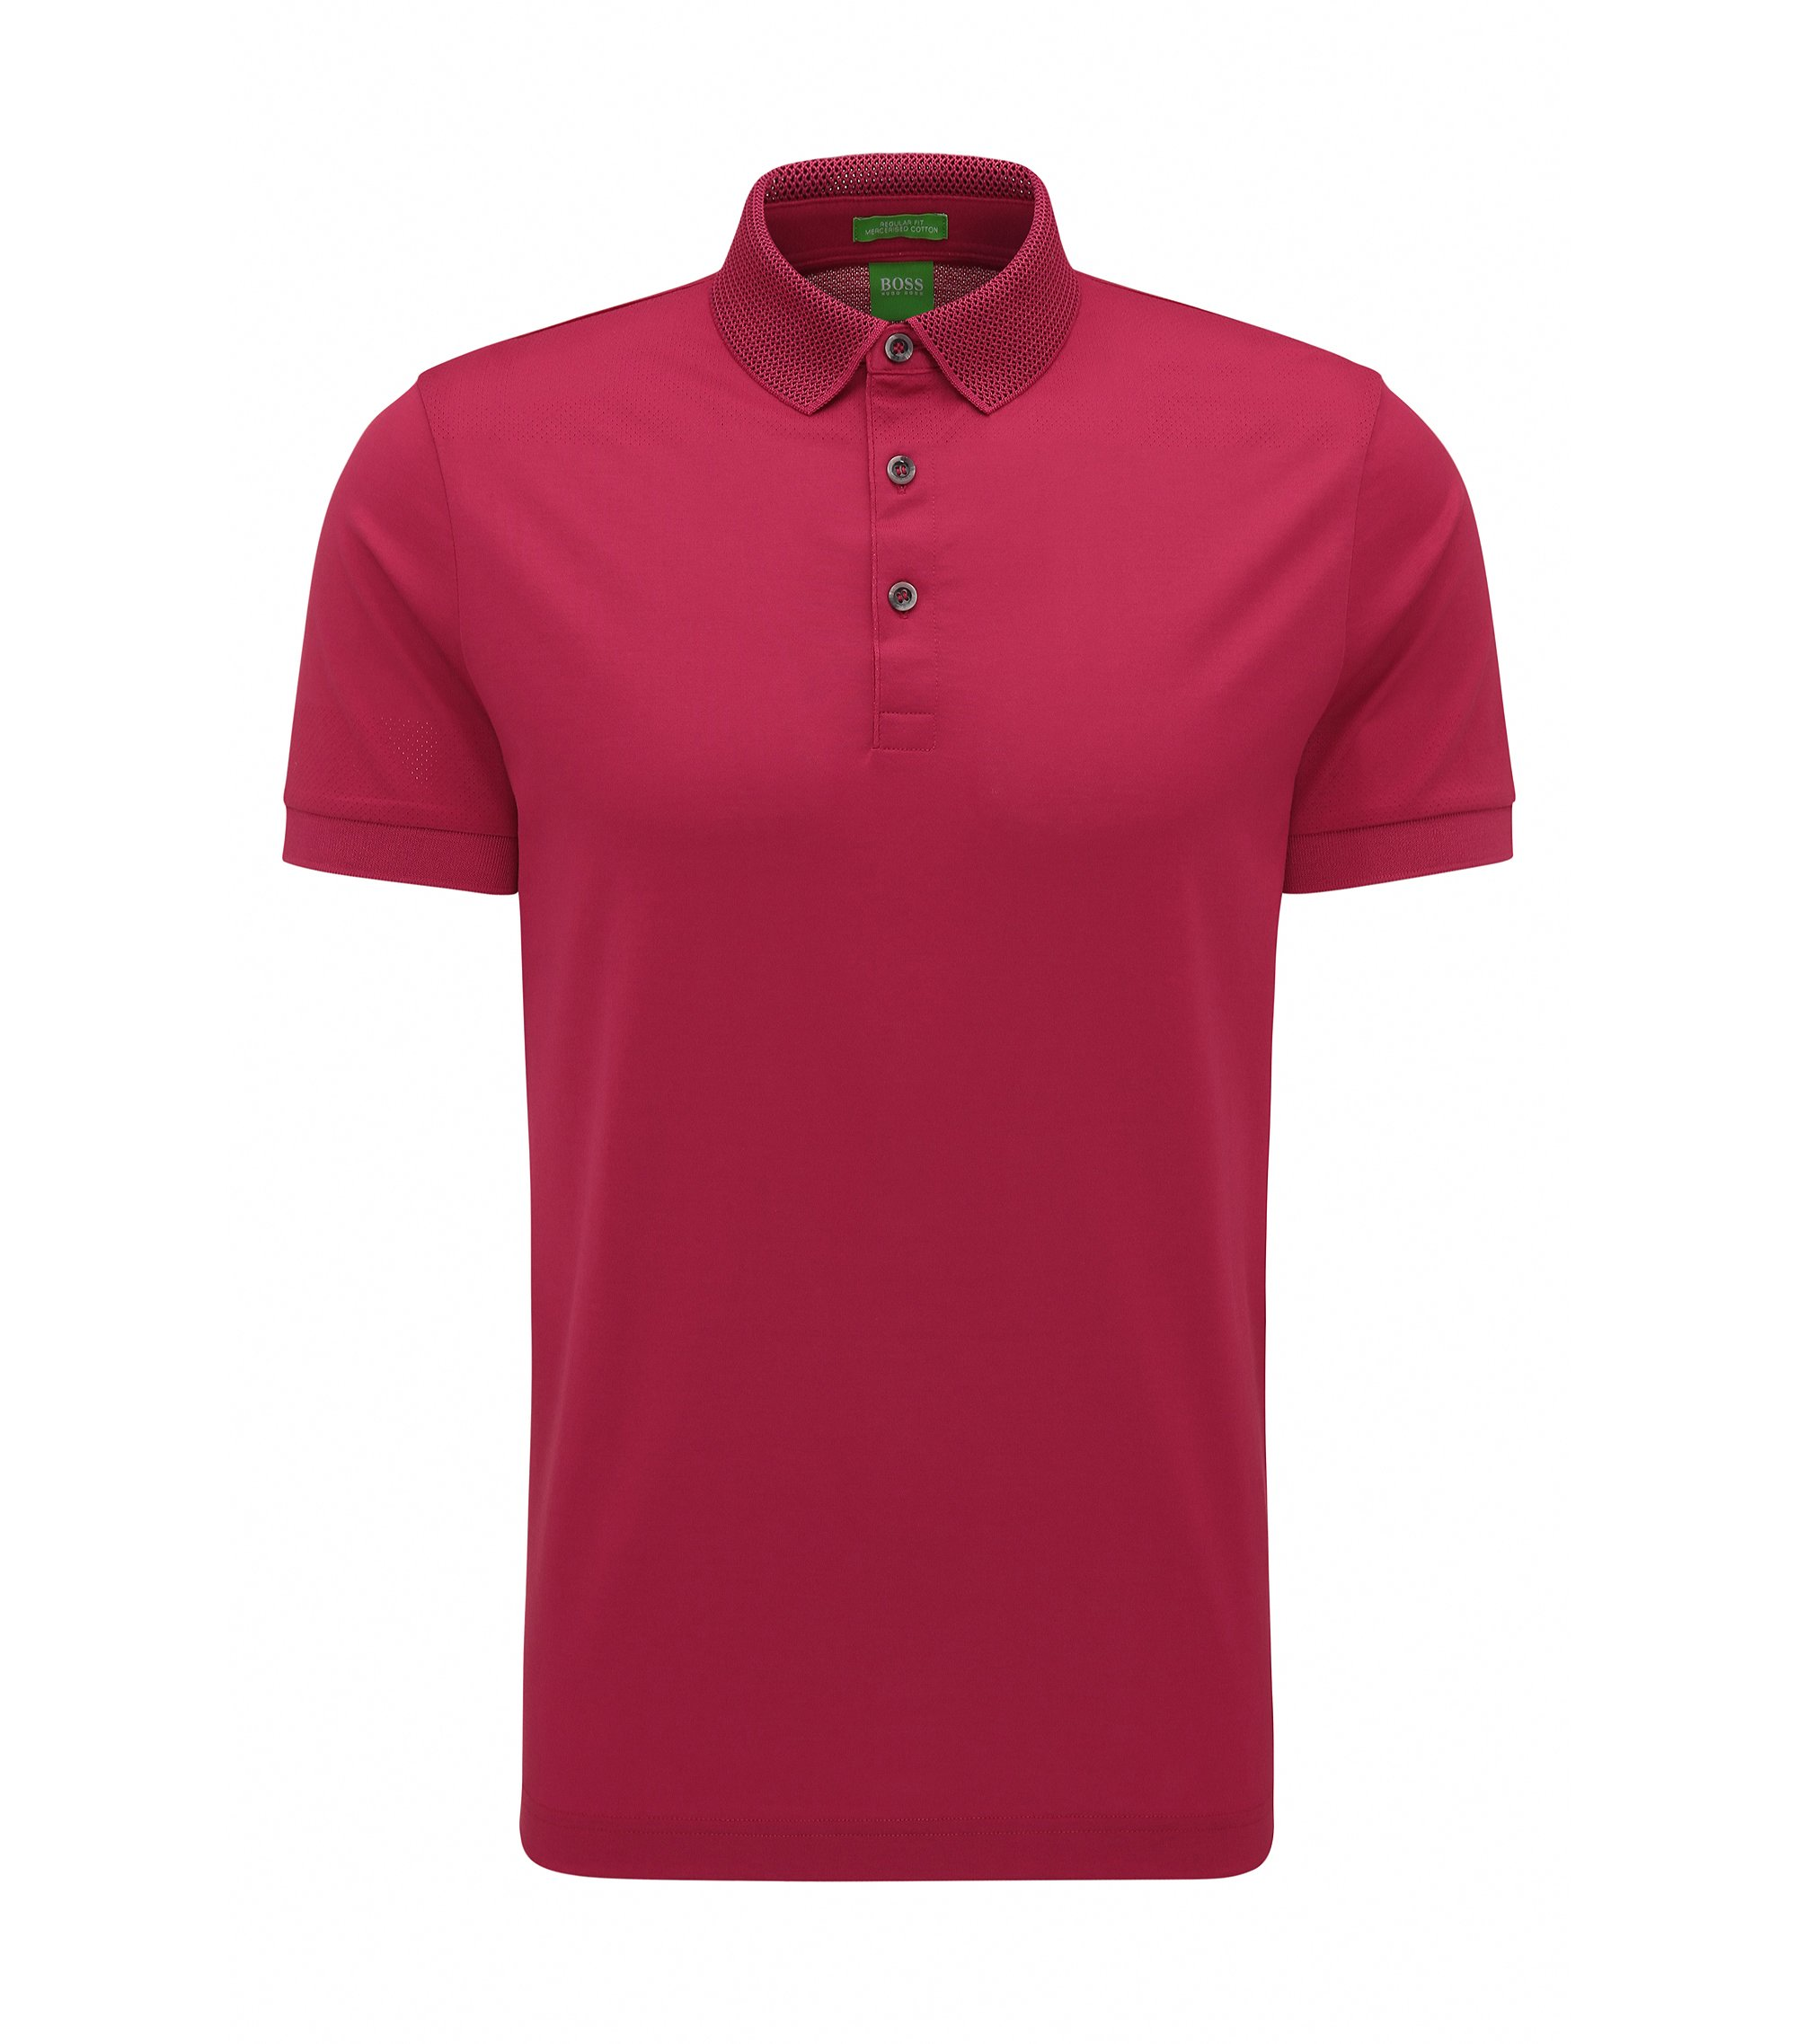 Mercerized Cotton Polo Shirt, Slim Fit | C-Pirenzo, Pink